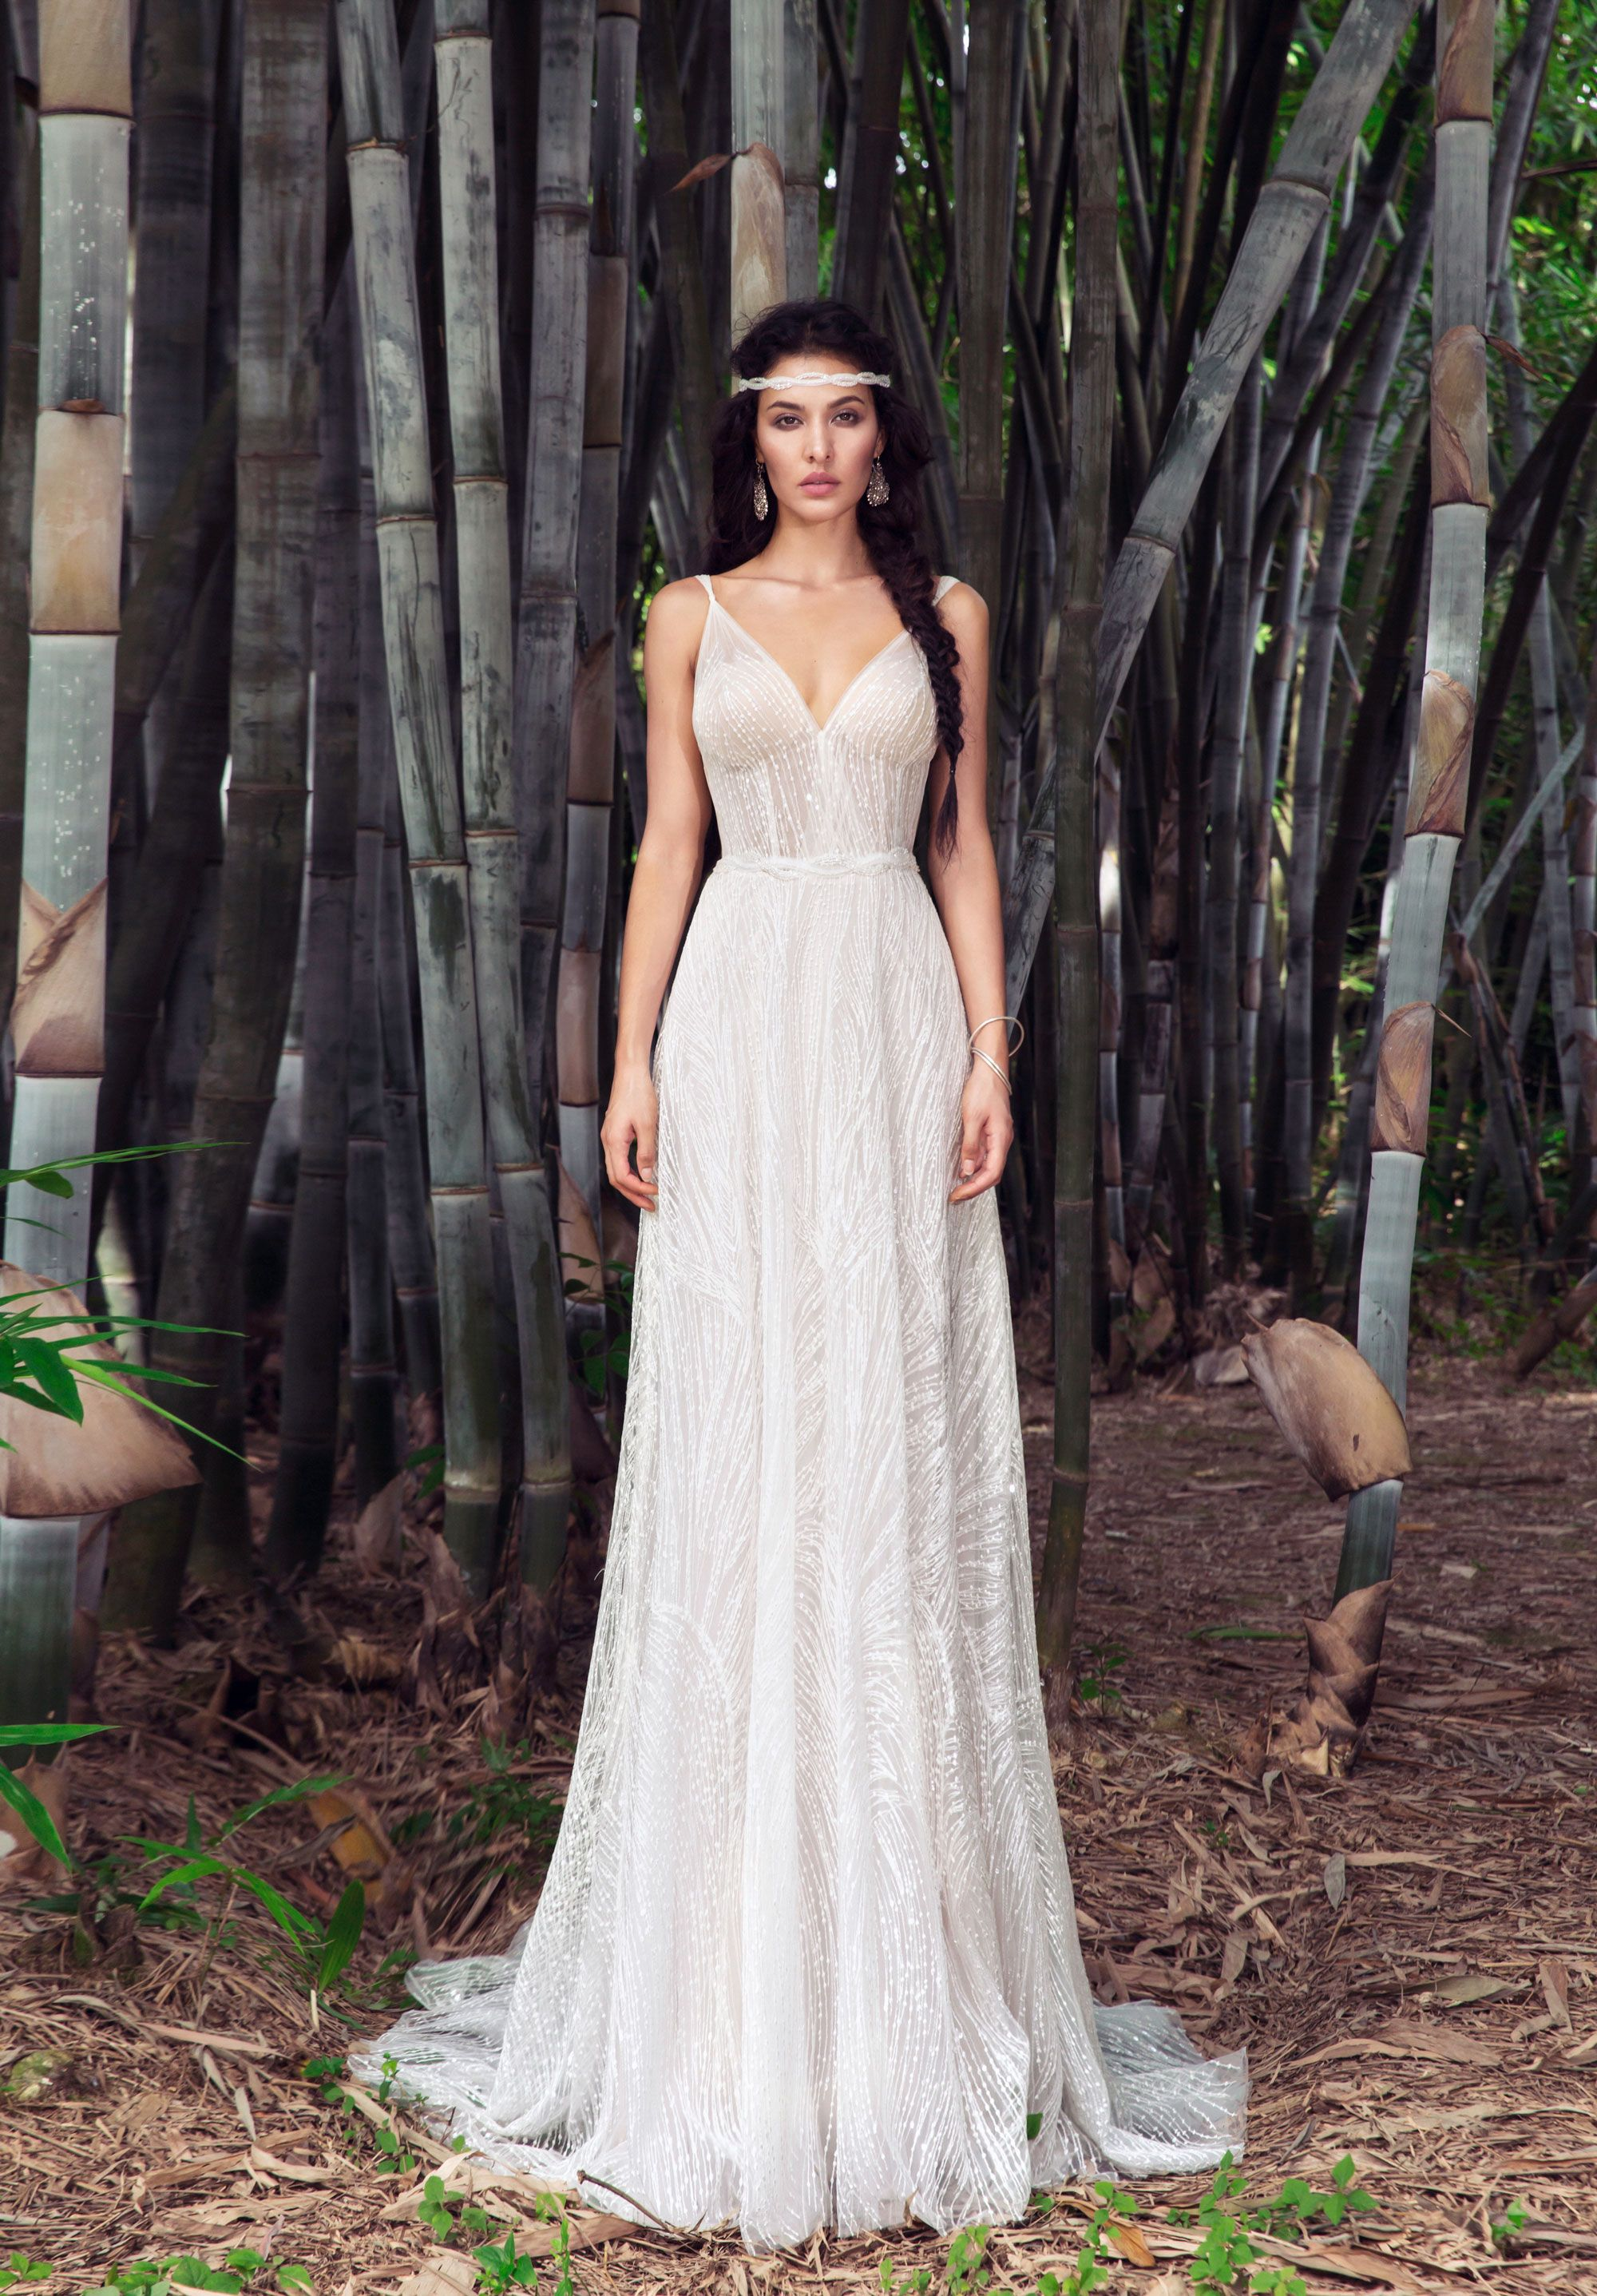 Quill Bridal Chic Nostalgia Bohemian And Romantic Wedding Dresses Boho Chic Wedding Dress Boho Wedding Dress Wedding Dresses